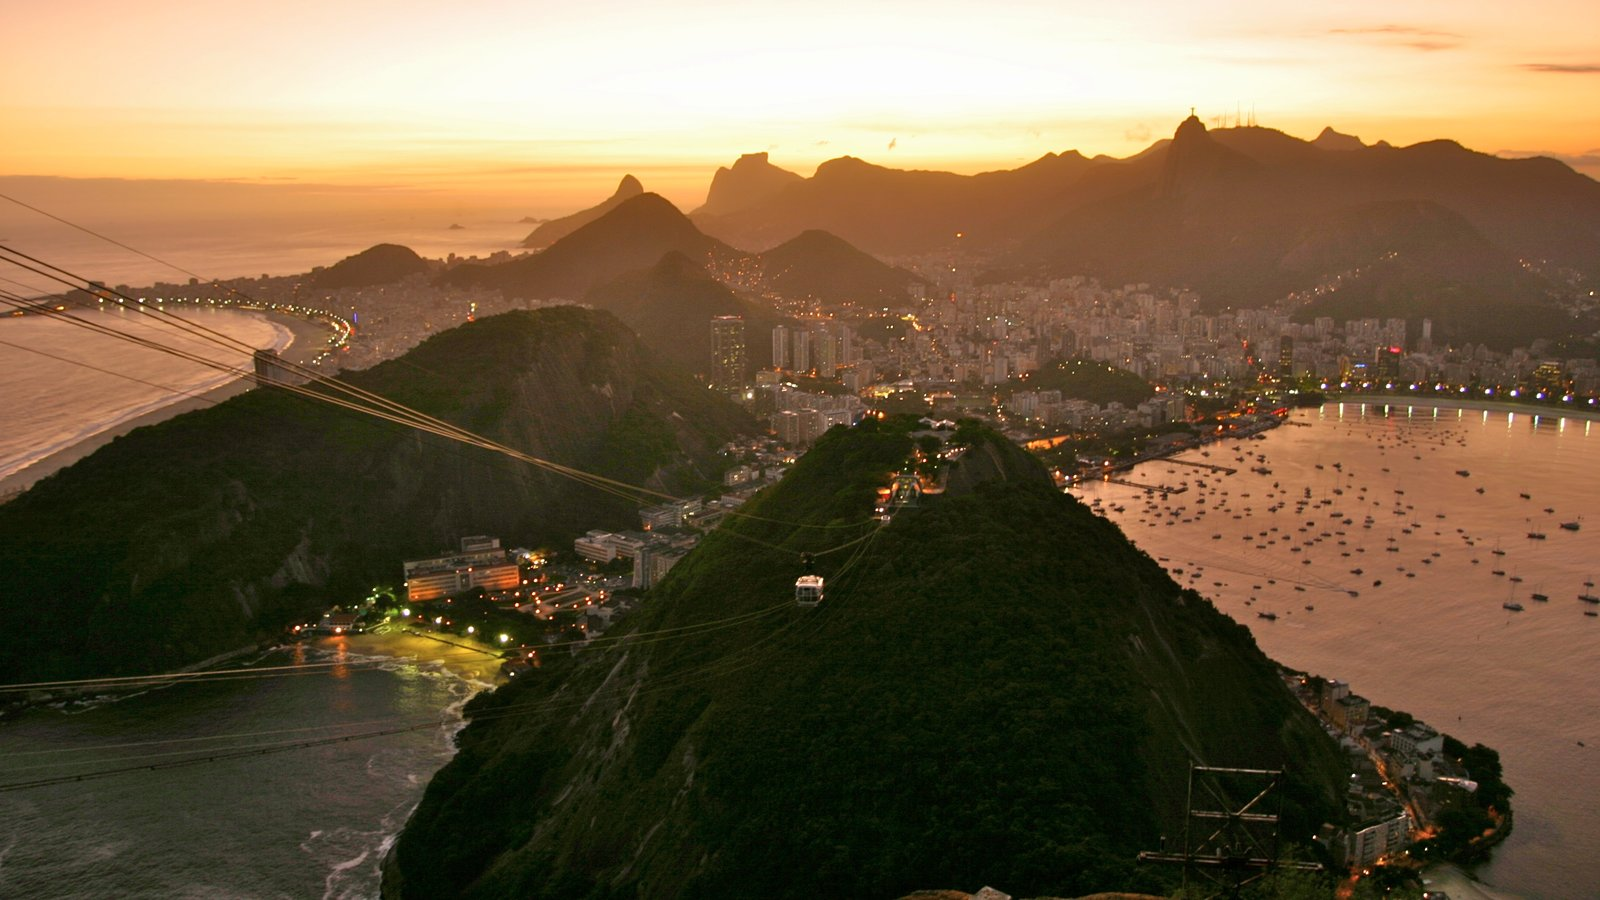 Sugar Loaf Mountain featuring a sunset, a bay or harbor and a coastal town